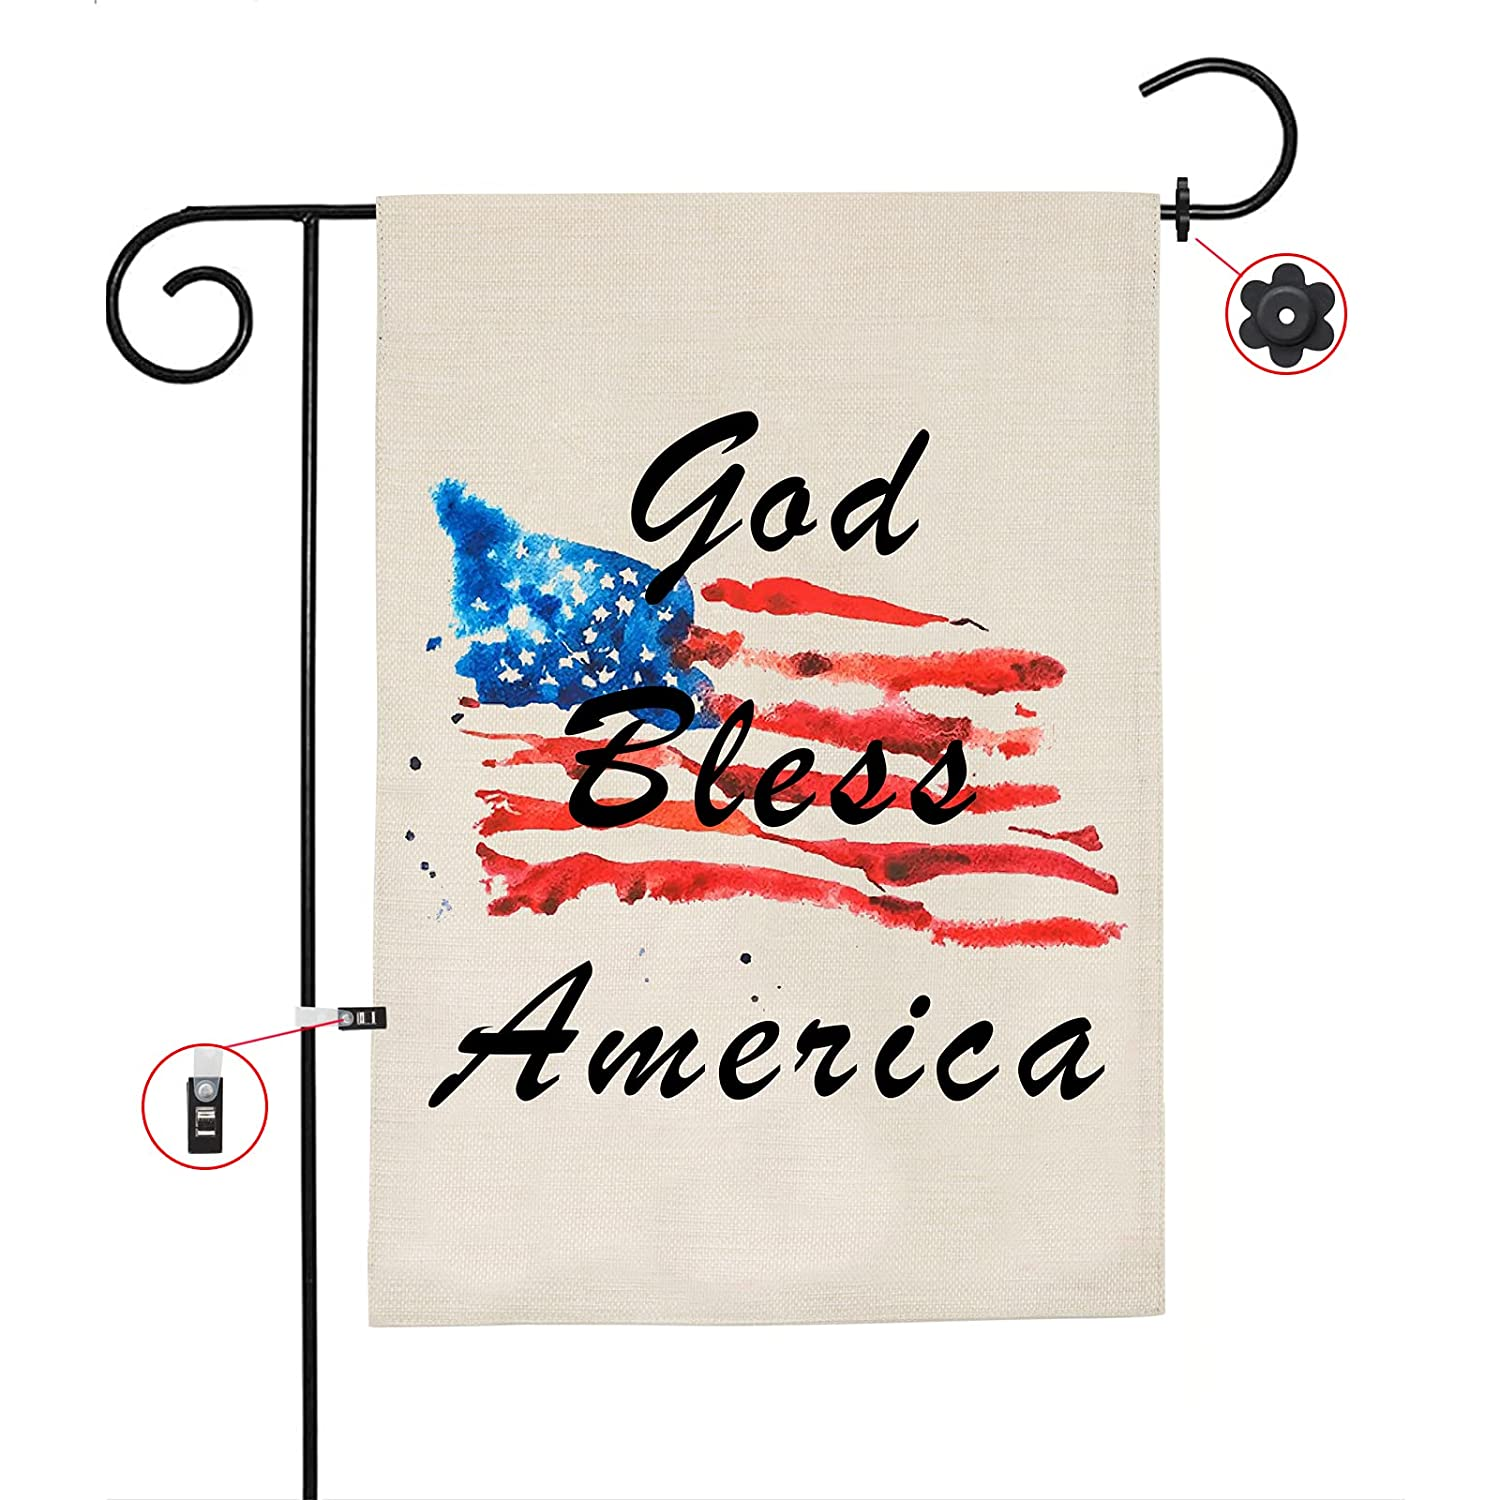 God Bless America 4th of July Garden Flag, Vertical Double Sided Star and Strip American Flag, Patriotic Memorial Day Independence Day 12.5x18 Inch Monogram Sign with Stopper and Anti-Wind Clip